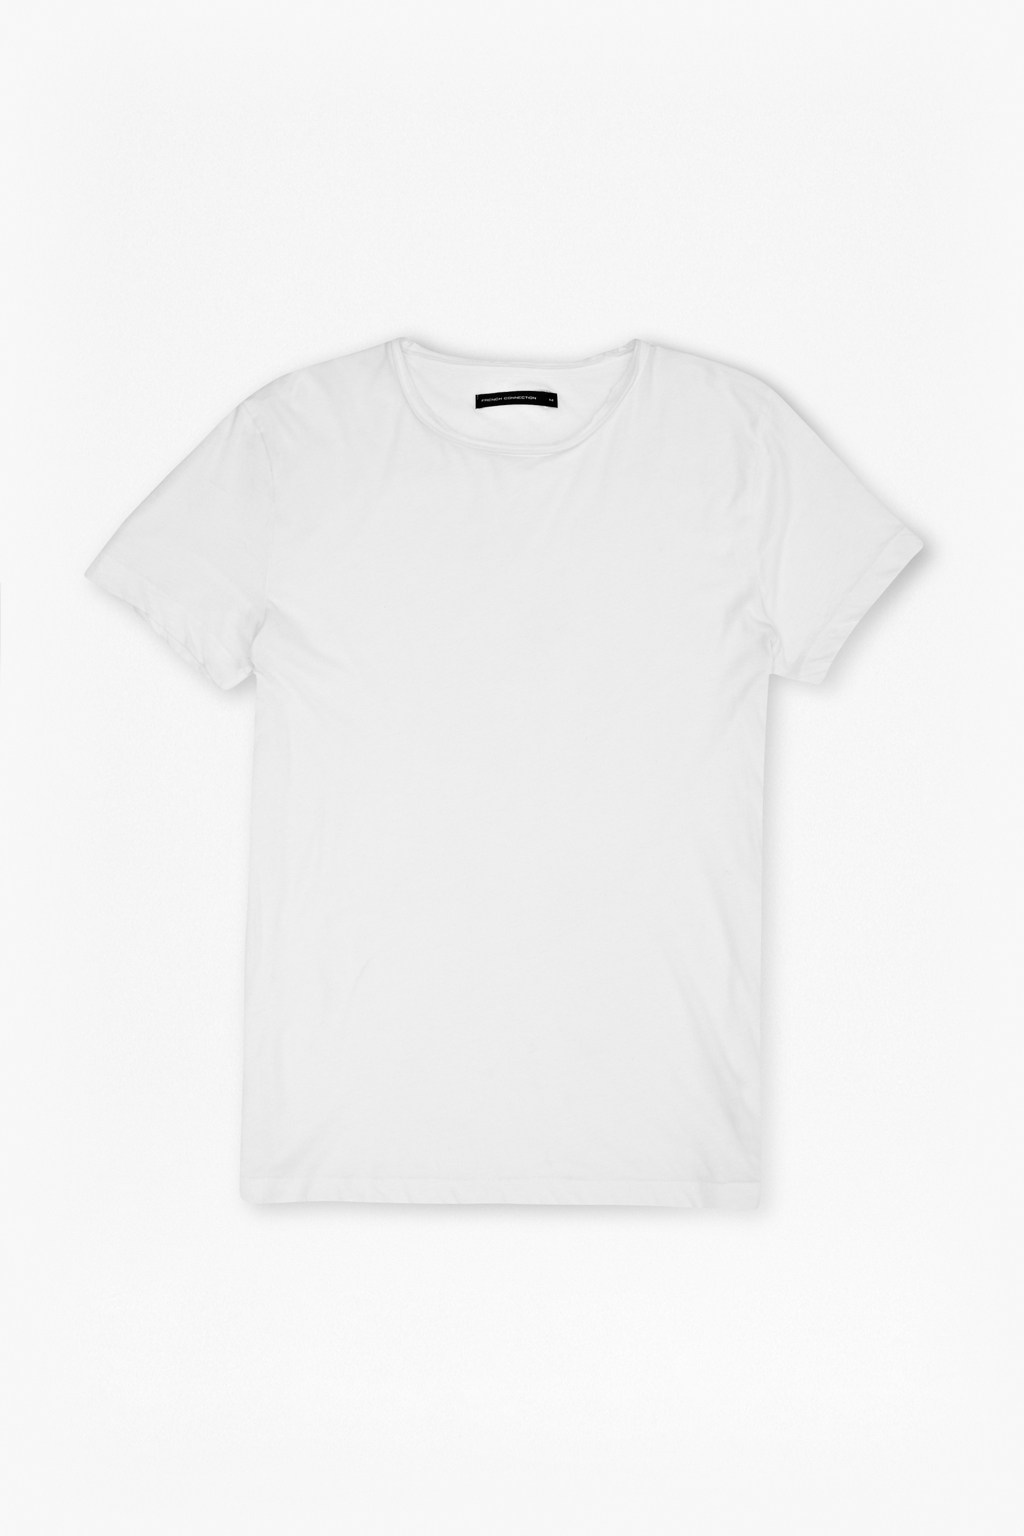 Rolled edge plain t shirt collections french connection for Plain t shirt model